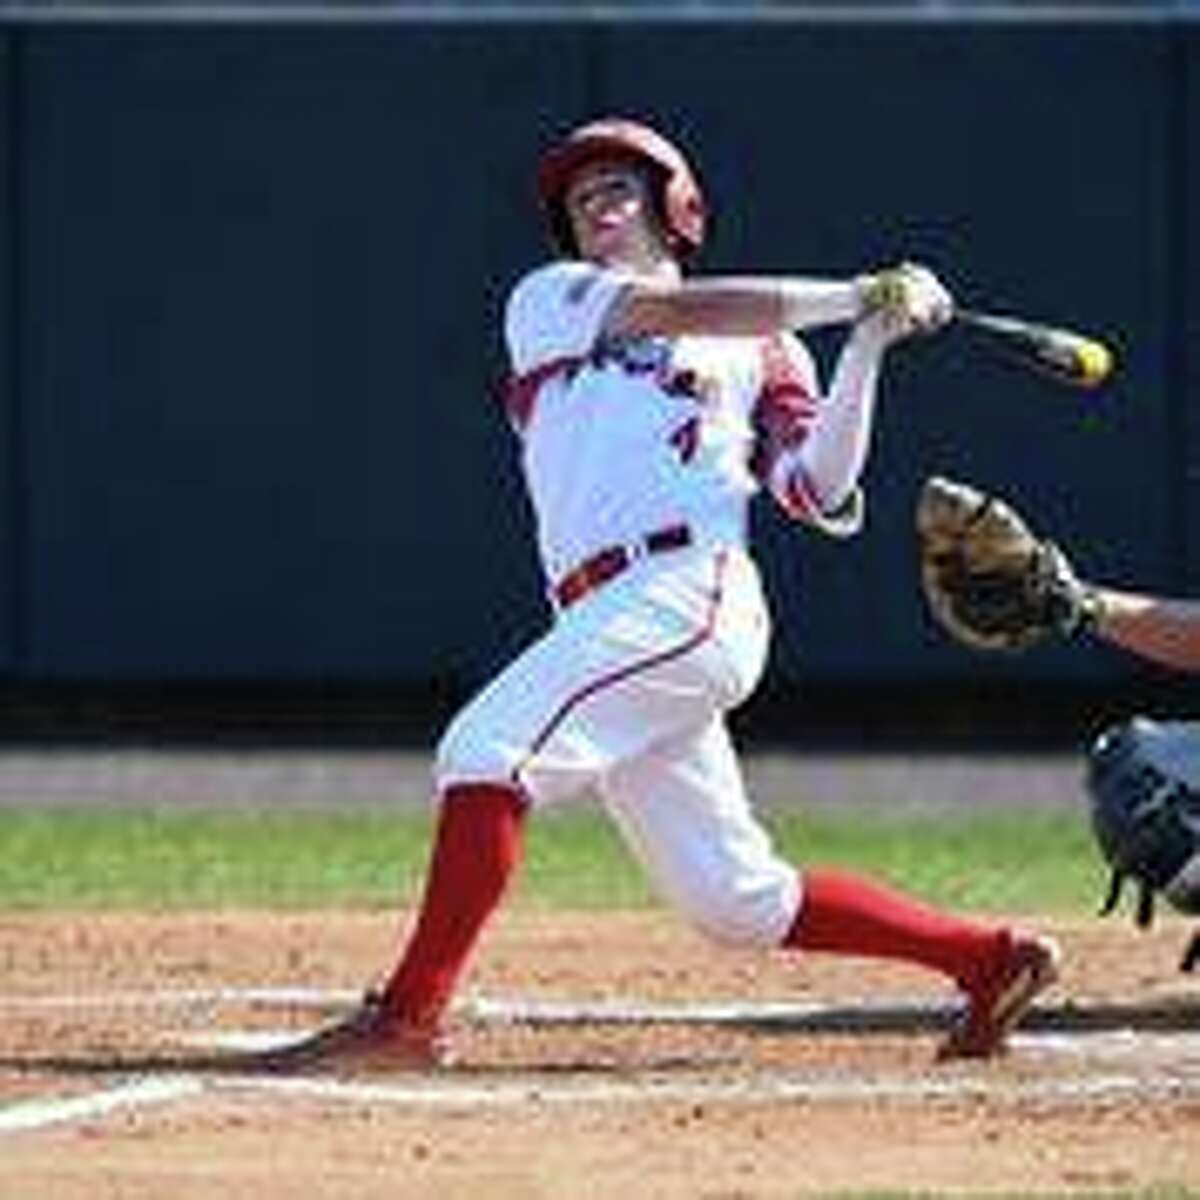 Former Sacred Heart standout Zack Short is the No. 22 prospect in the Cubs' organization.